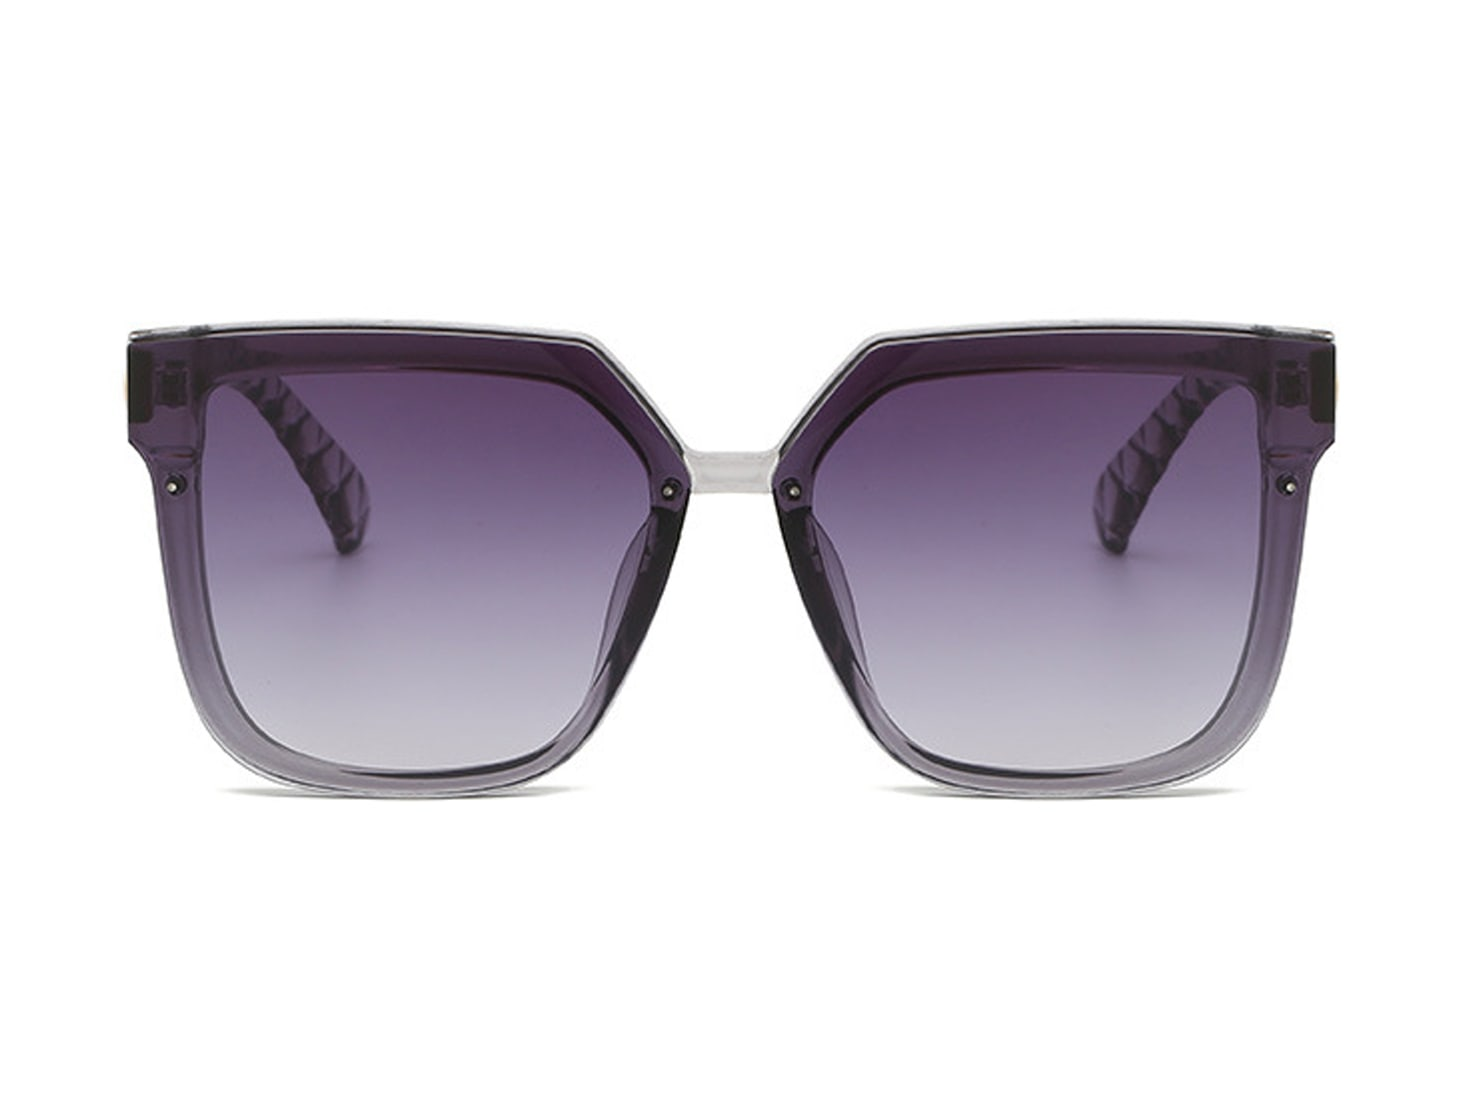 Trailblazer Cat-Eye Shades - Clear / Gradient Purple - Front